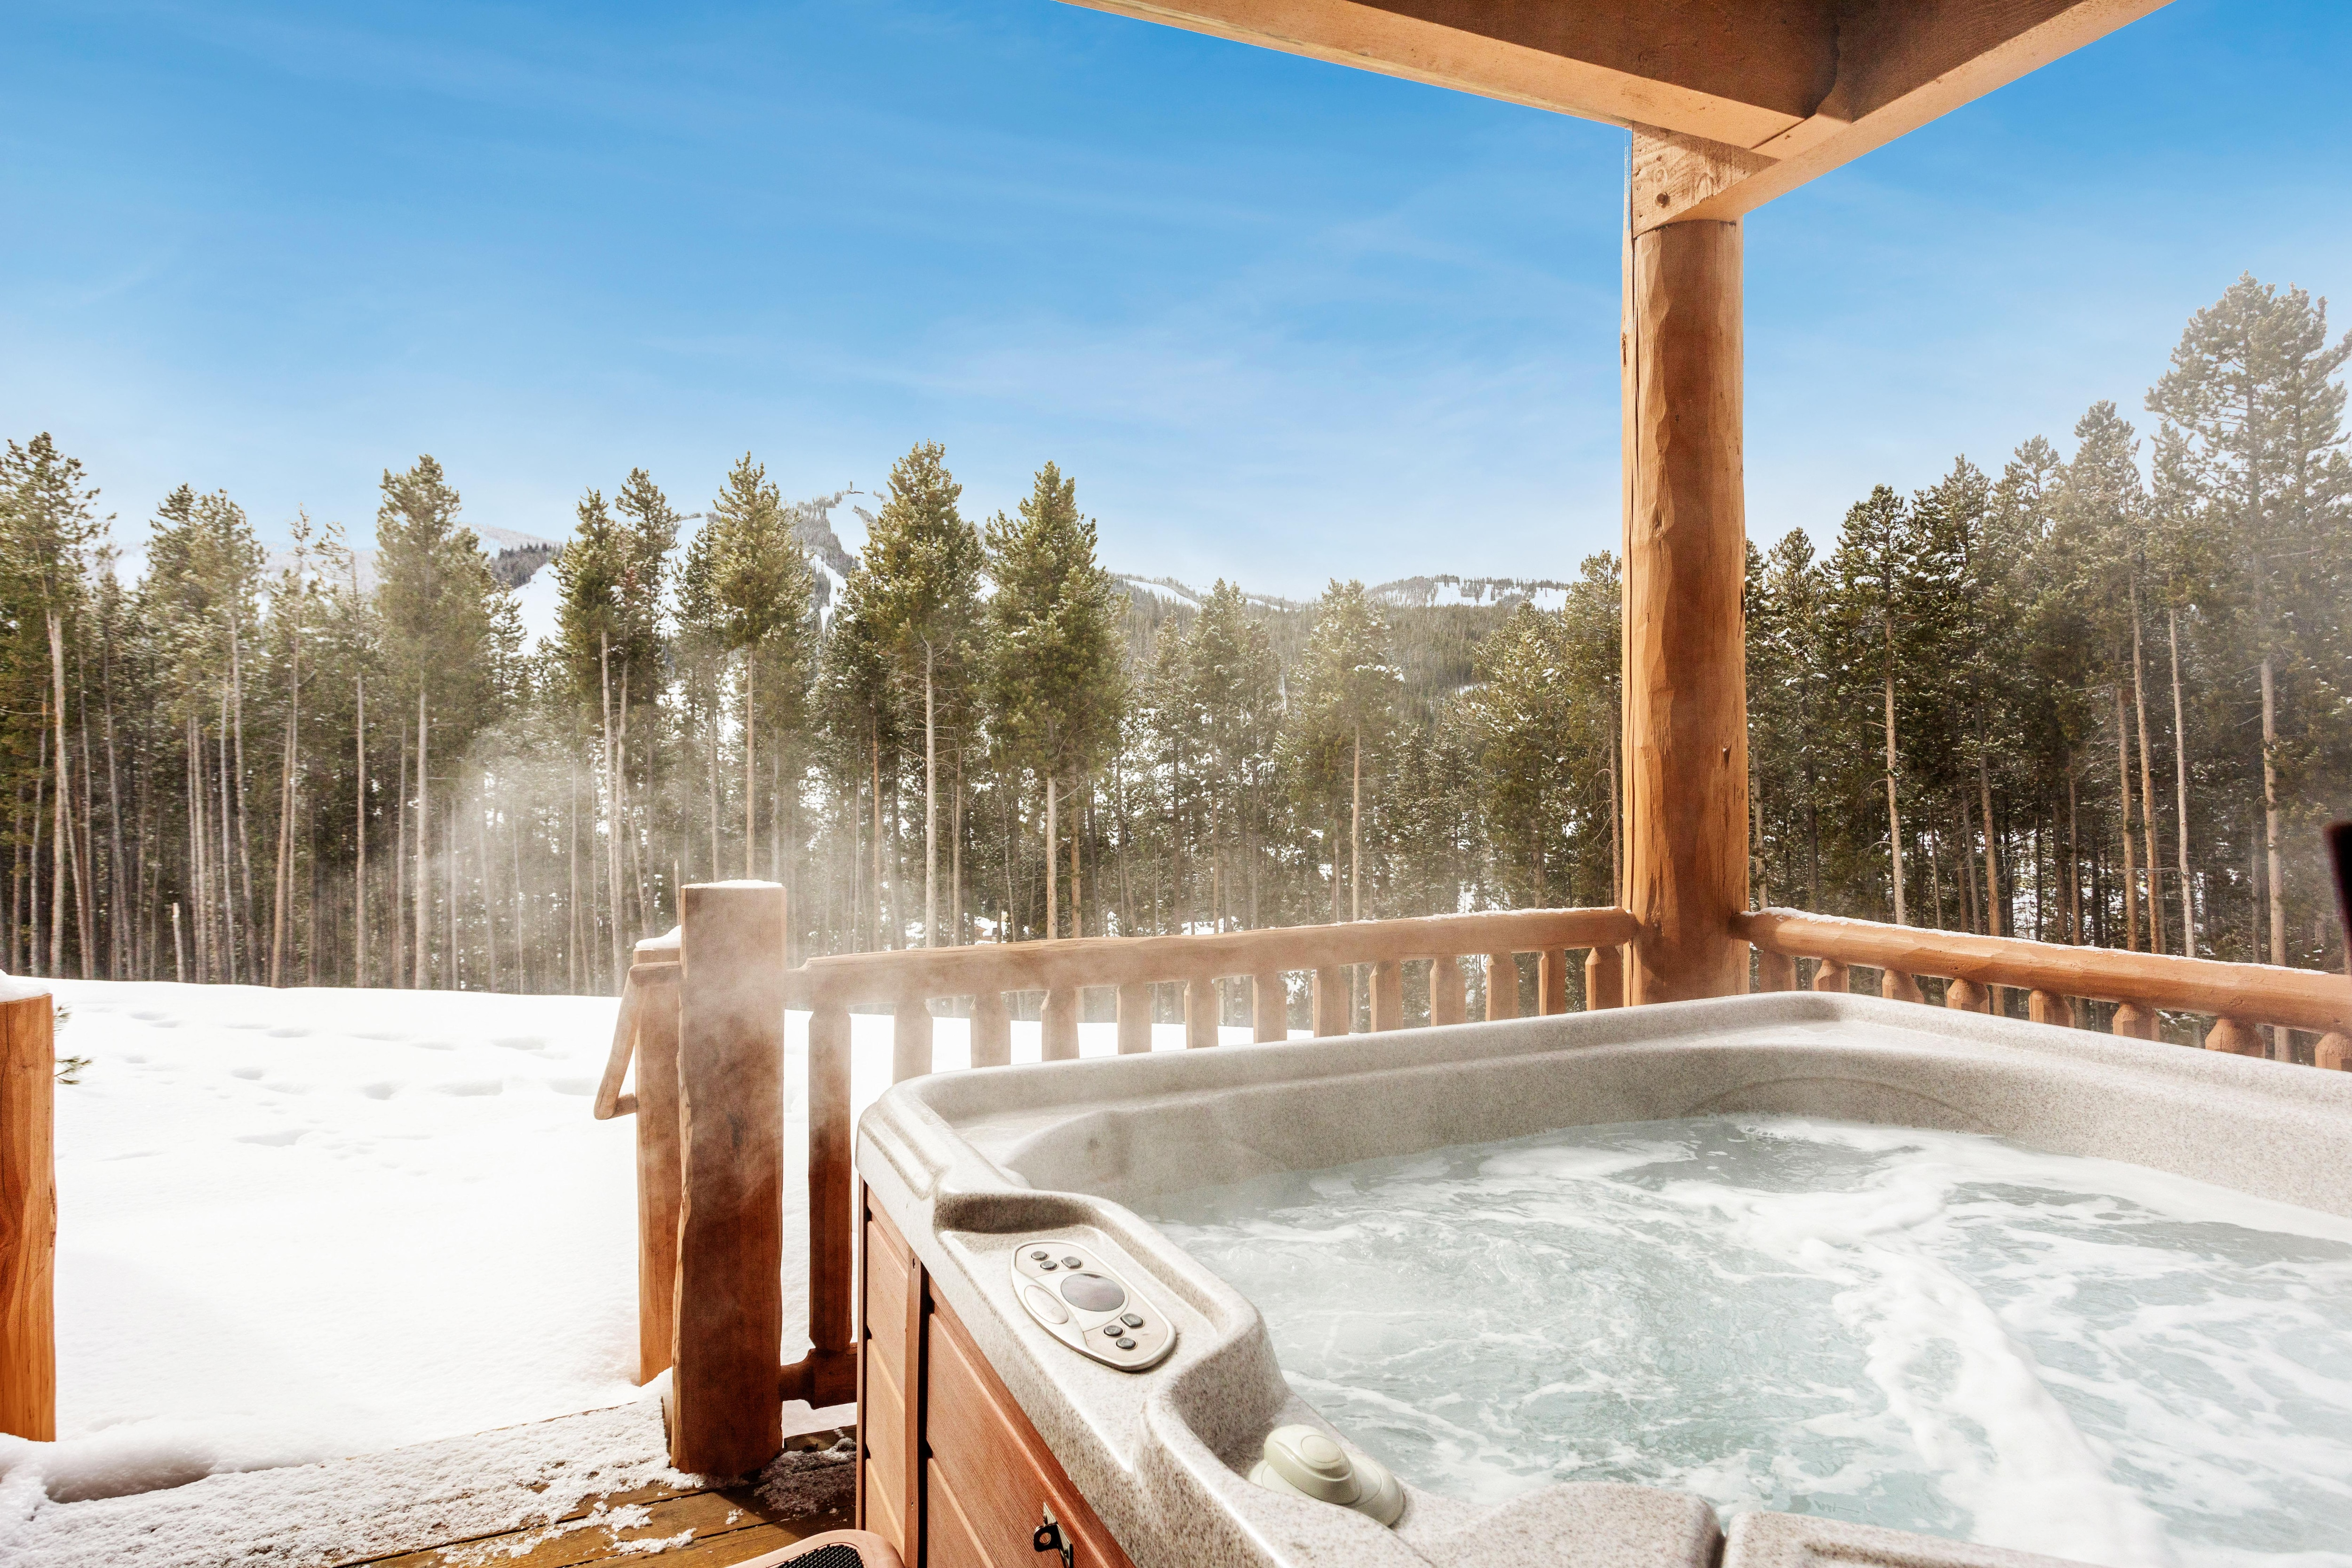 Take luxurious soaks in your private hot tub with mountain views.